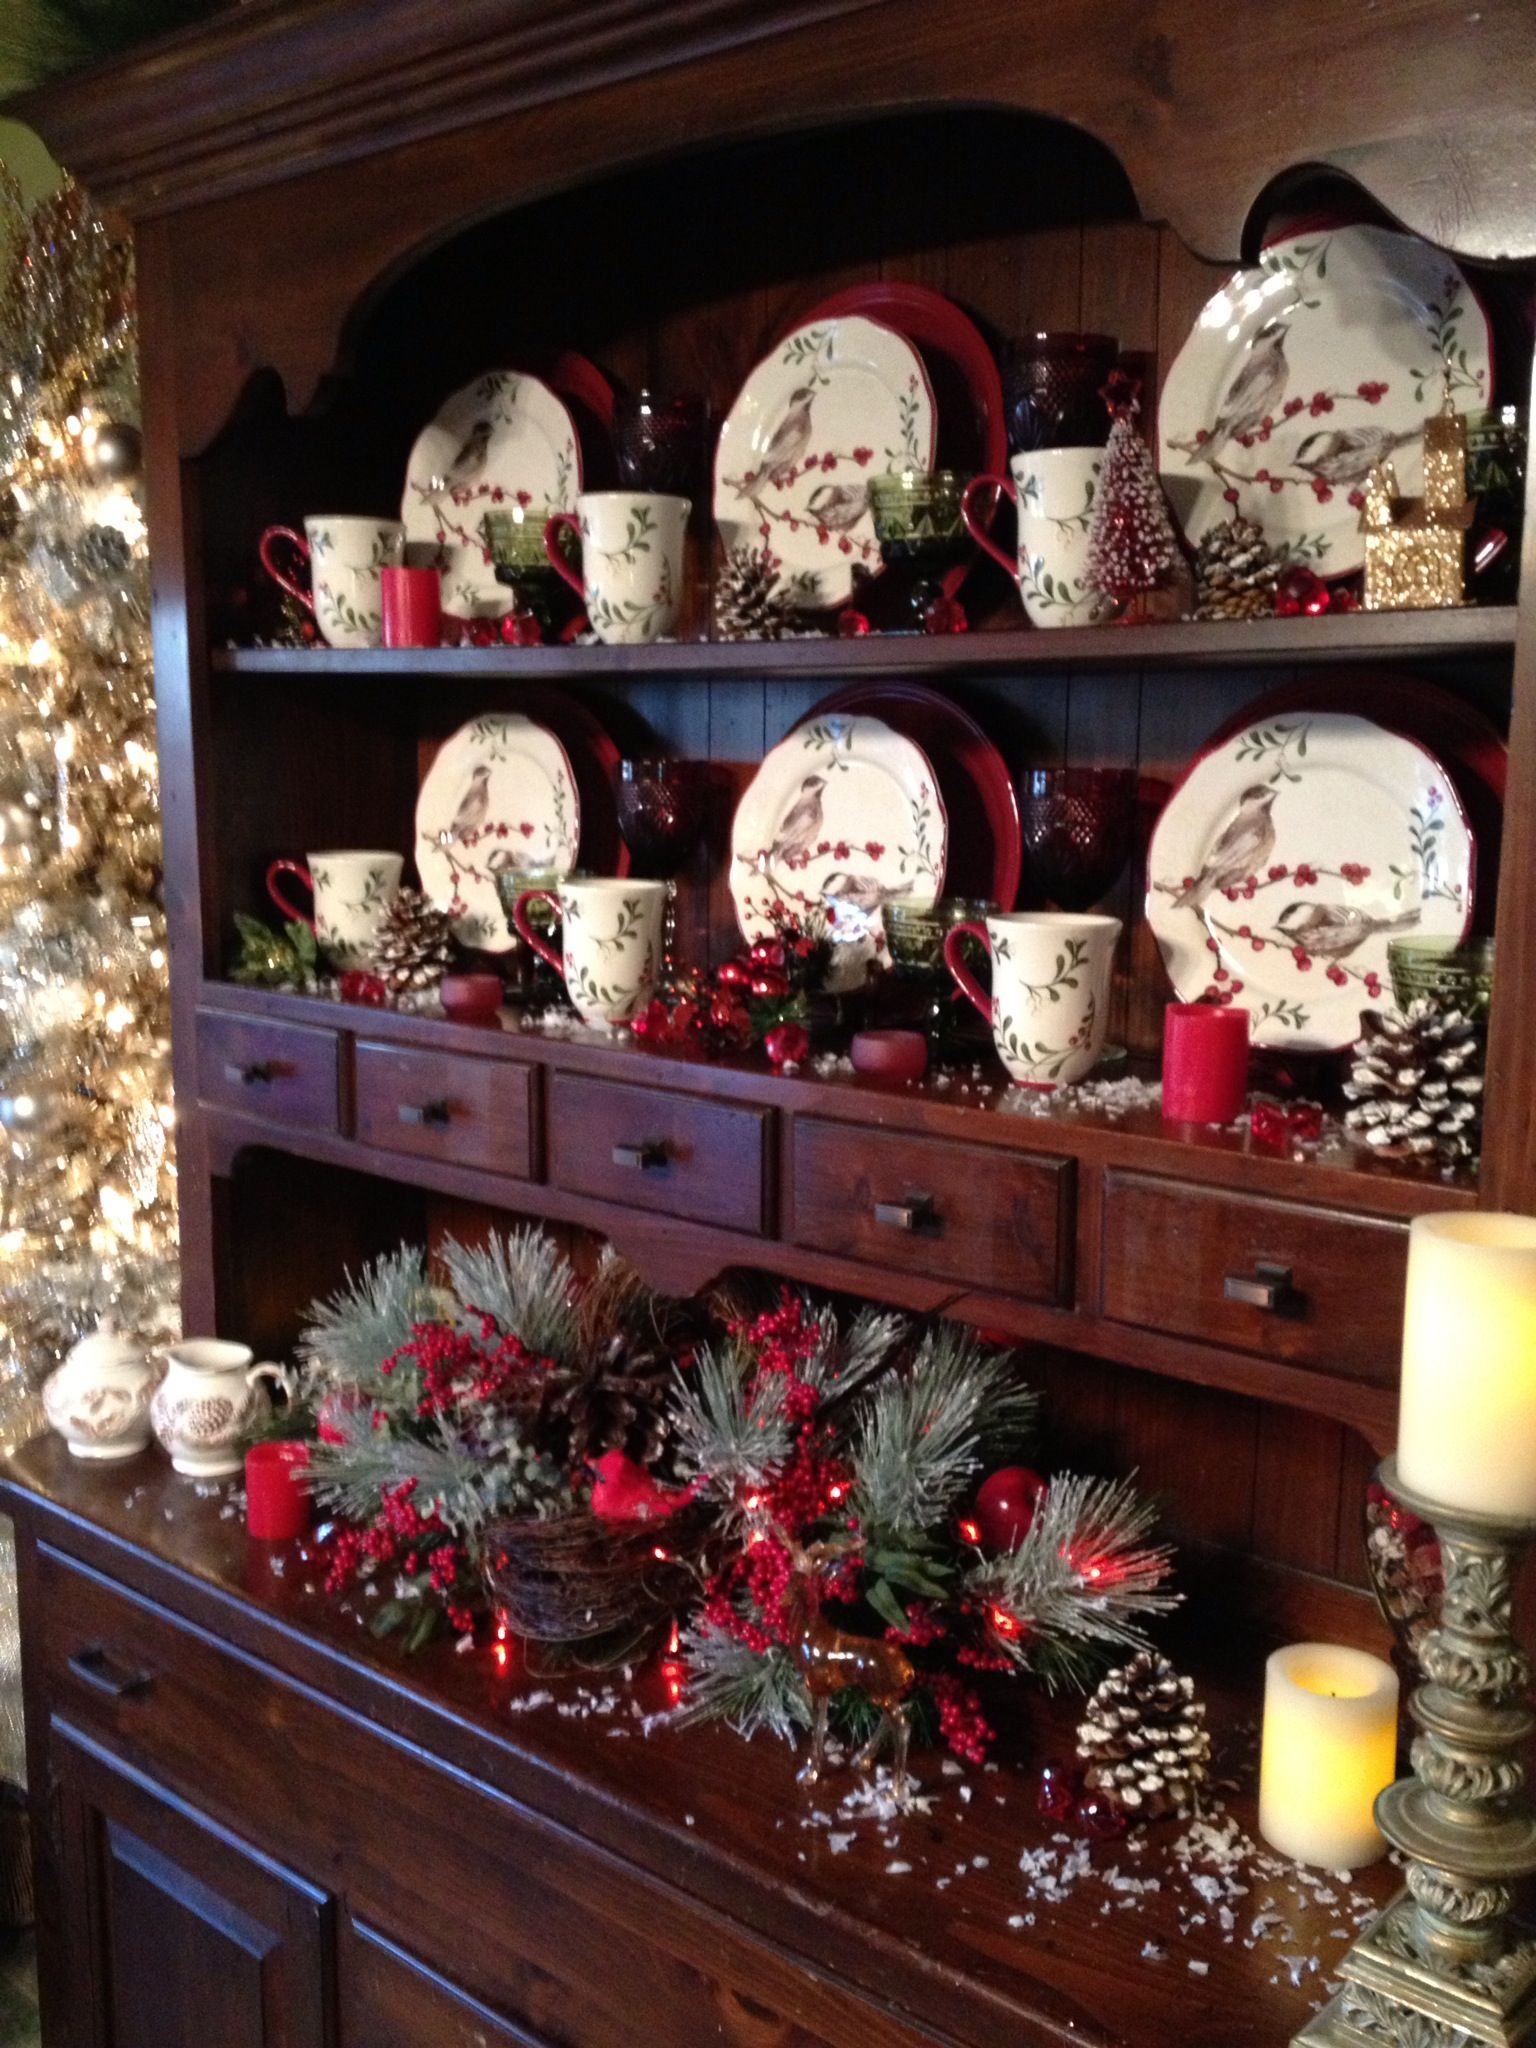 Pretty Christmas Decor Hutch Decorating Idea Hi My Name Is Monica